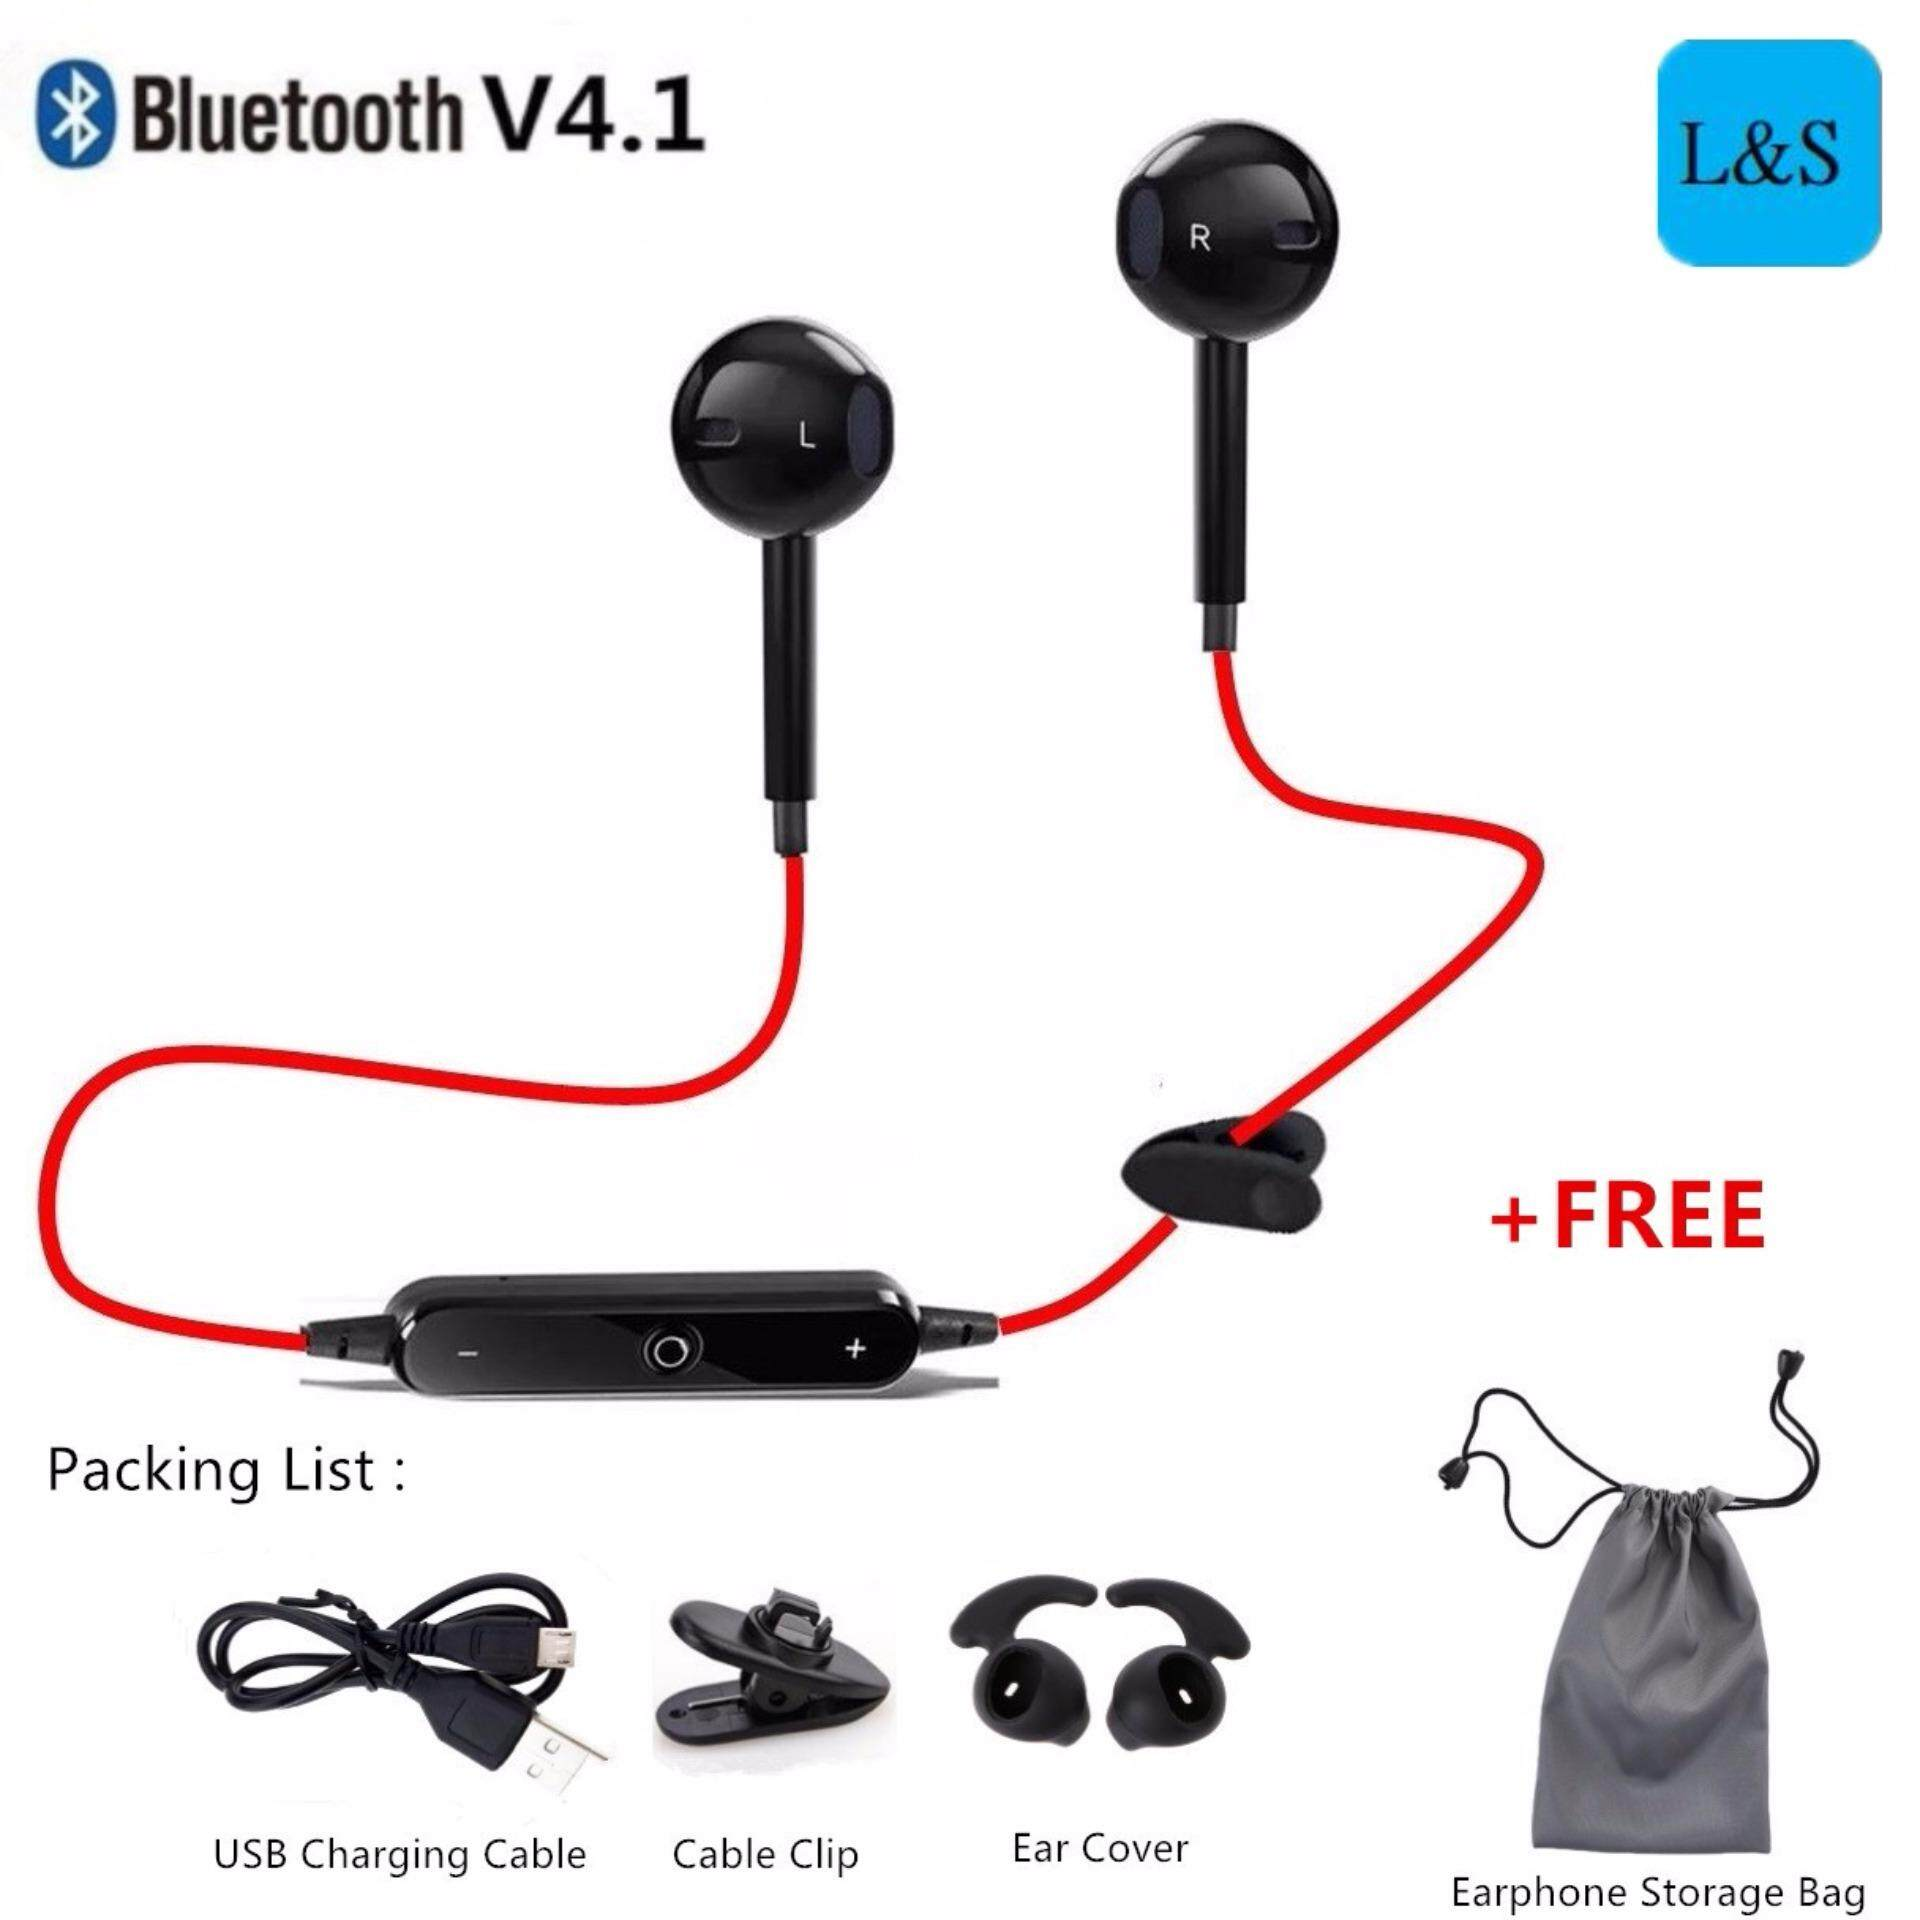 Headphones Headsets Buy At Best Price In Unique Headset Bluetooth Mini Untuk Samsung Oppo Xiaomi Handsfree G3 Putih Wireless Earbuds